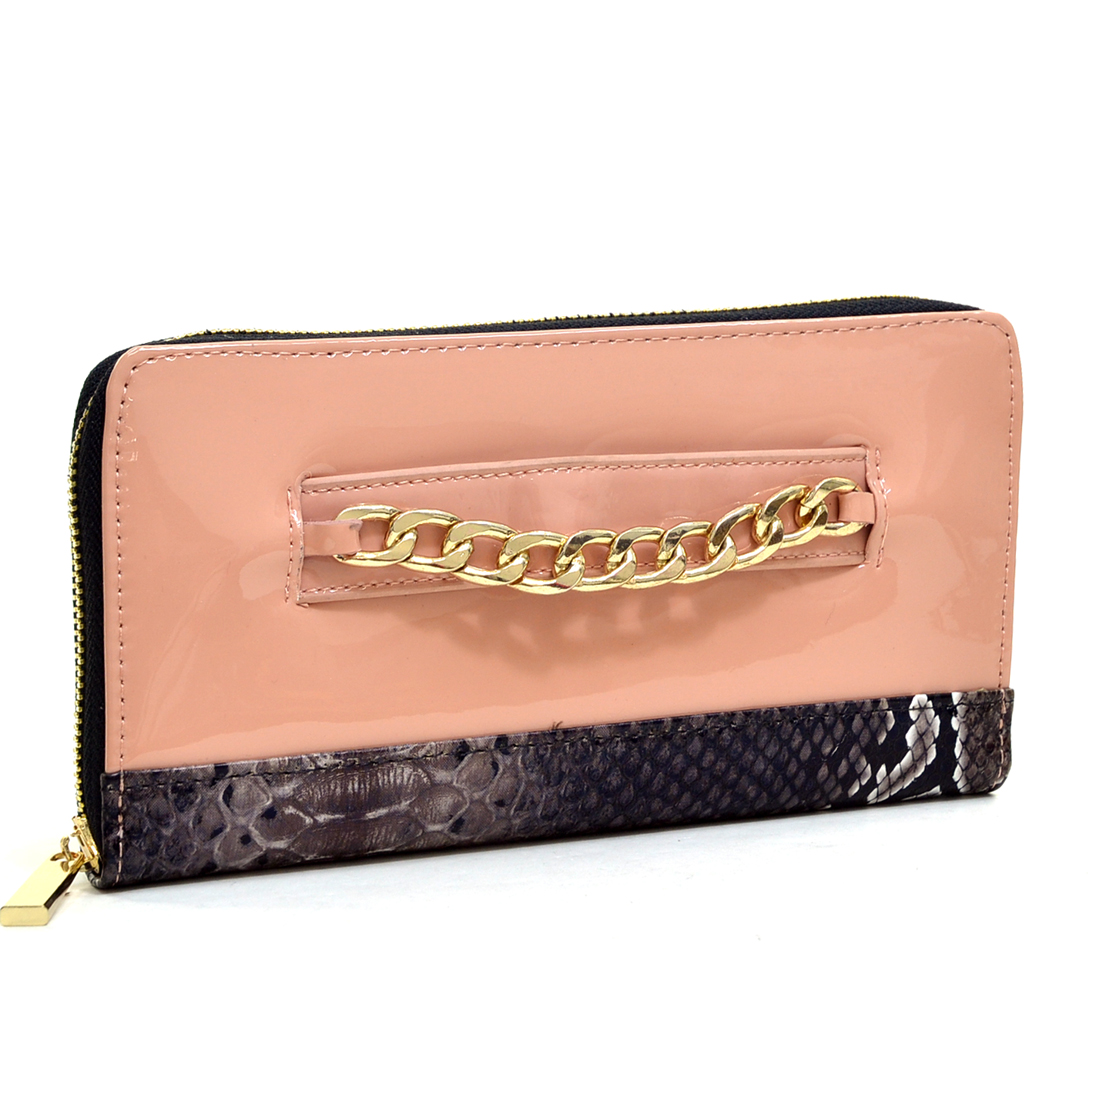 Gold-Tone Corner Faux Leather Push Lock Wallet